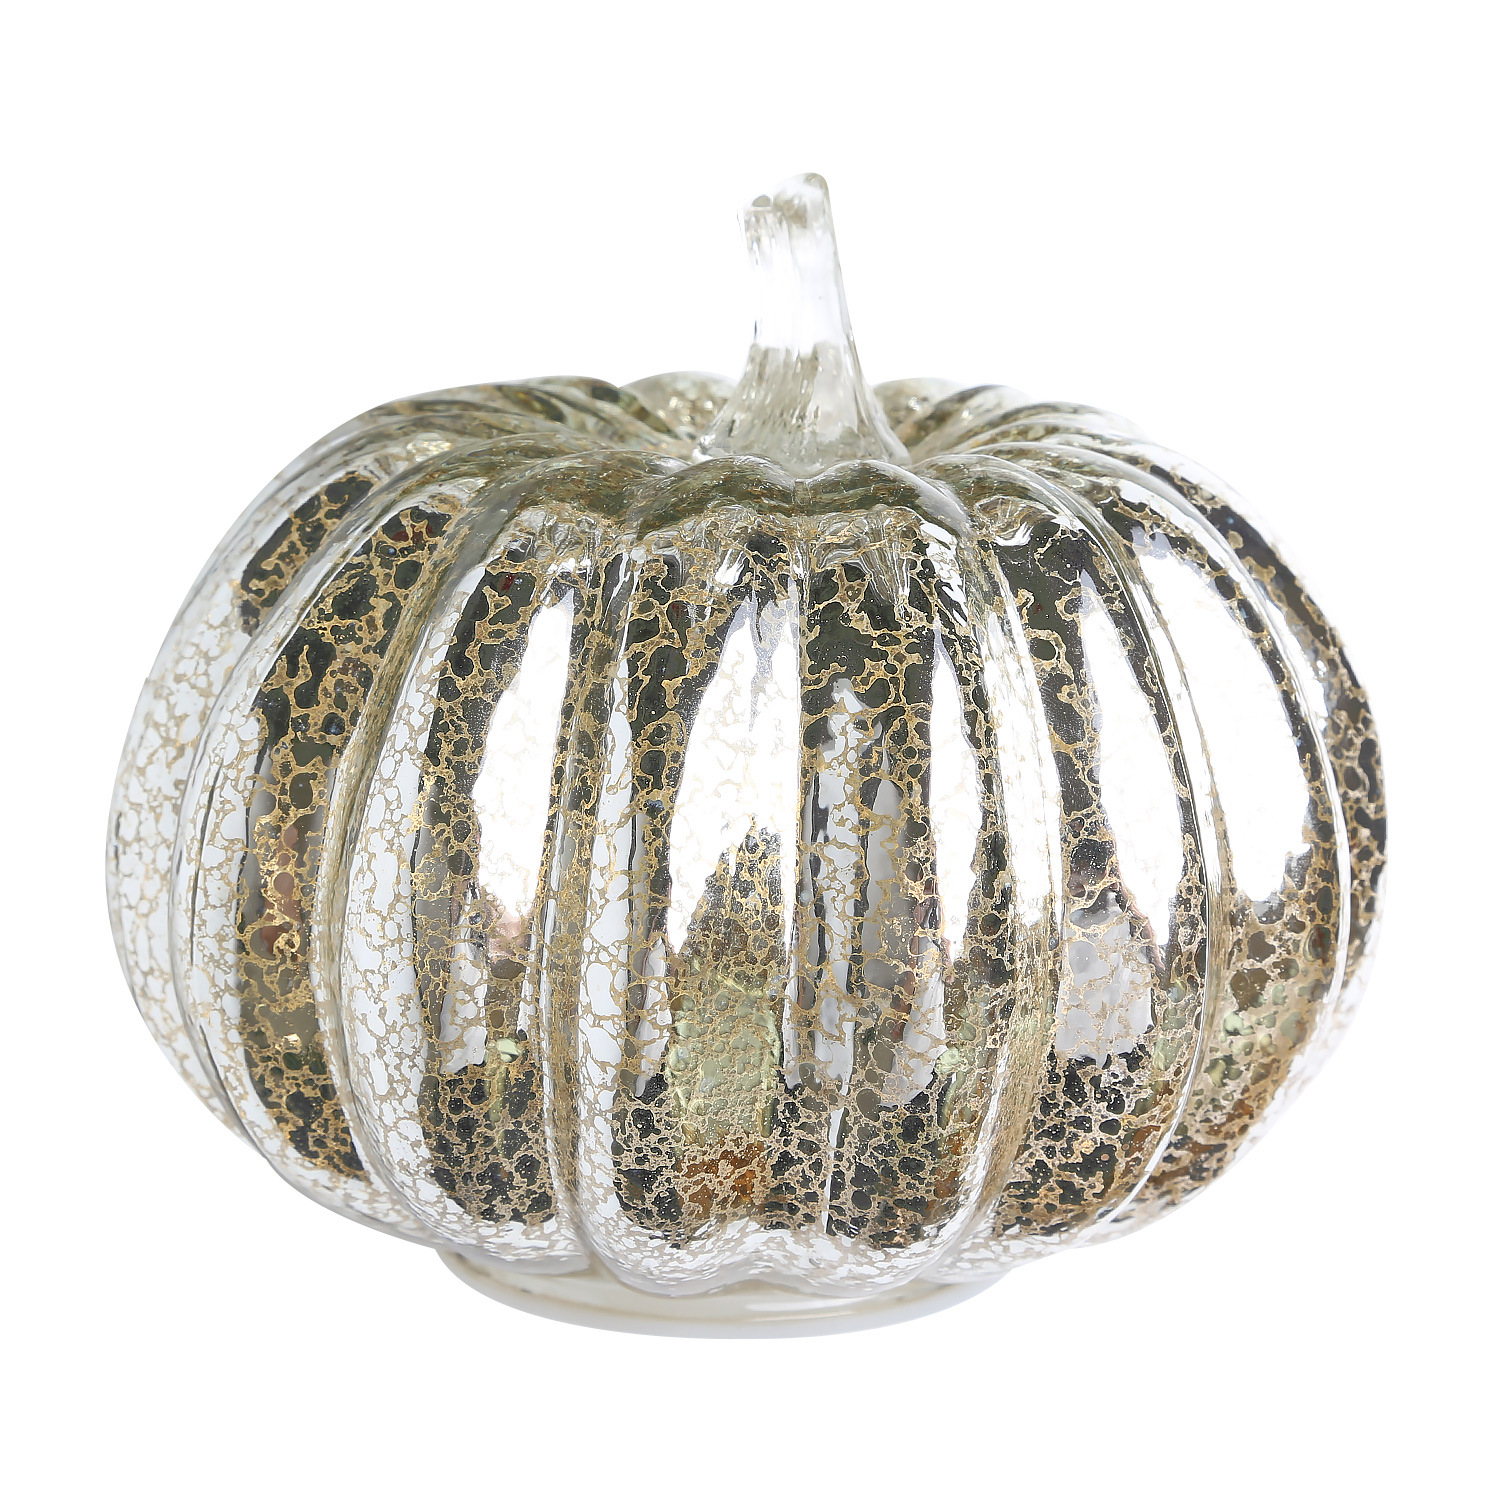 Glass Pumpkin Lamp for Halloween Ghost Party Festival Decorations  Silver 16.3*14cm